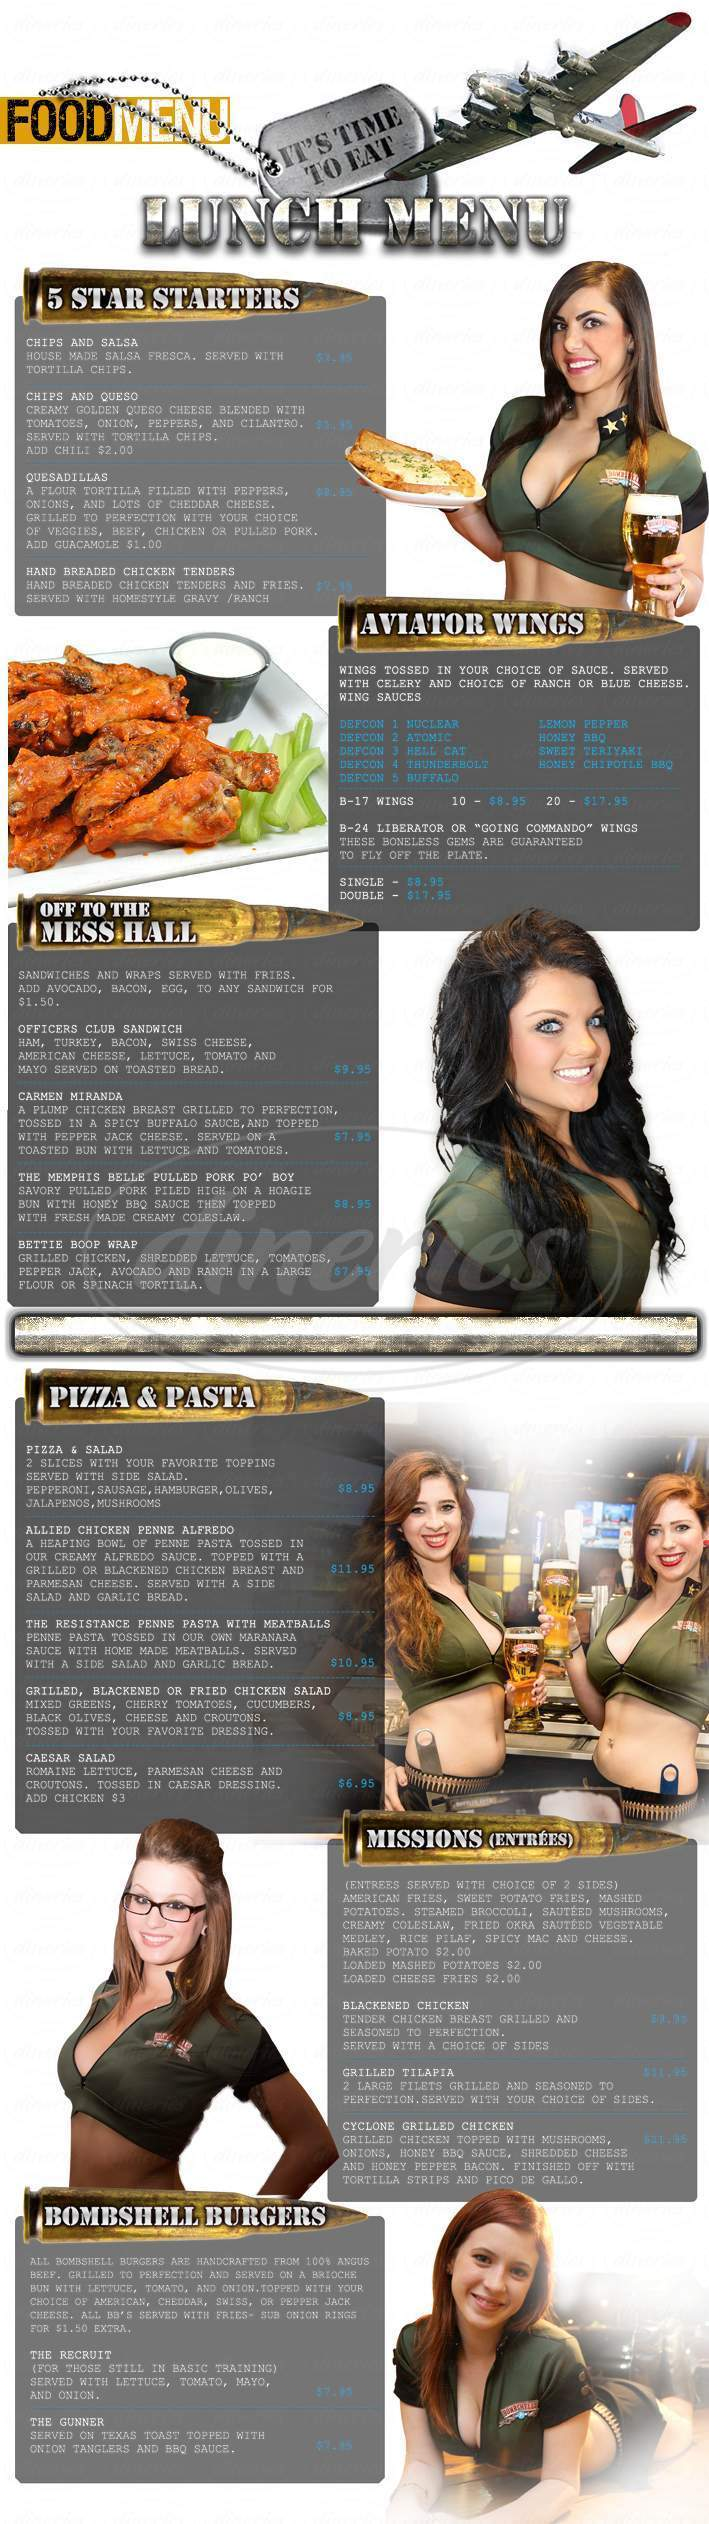 menu for Bombshells Restaurant & Bar